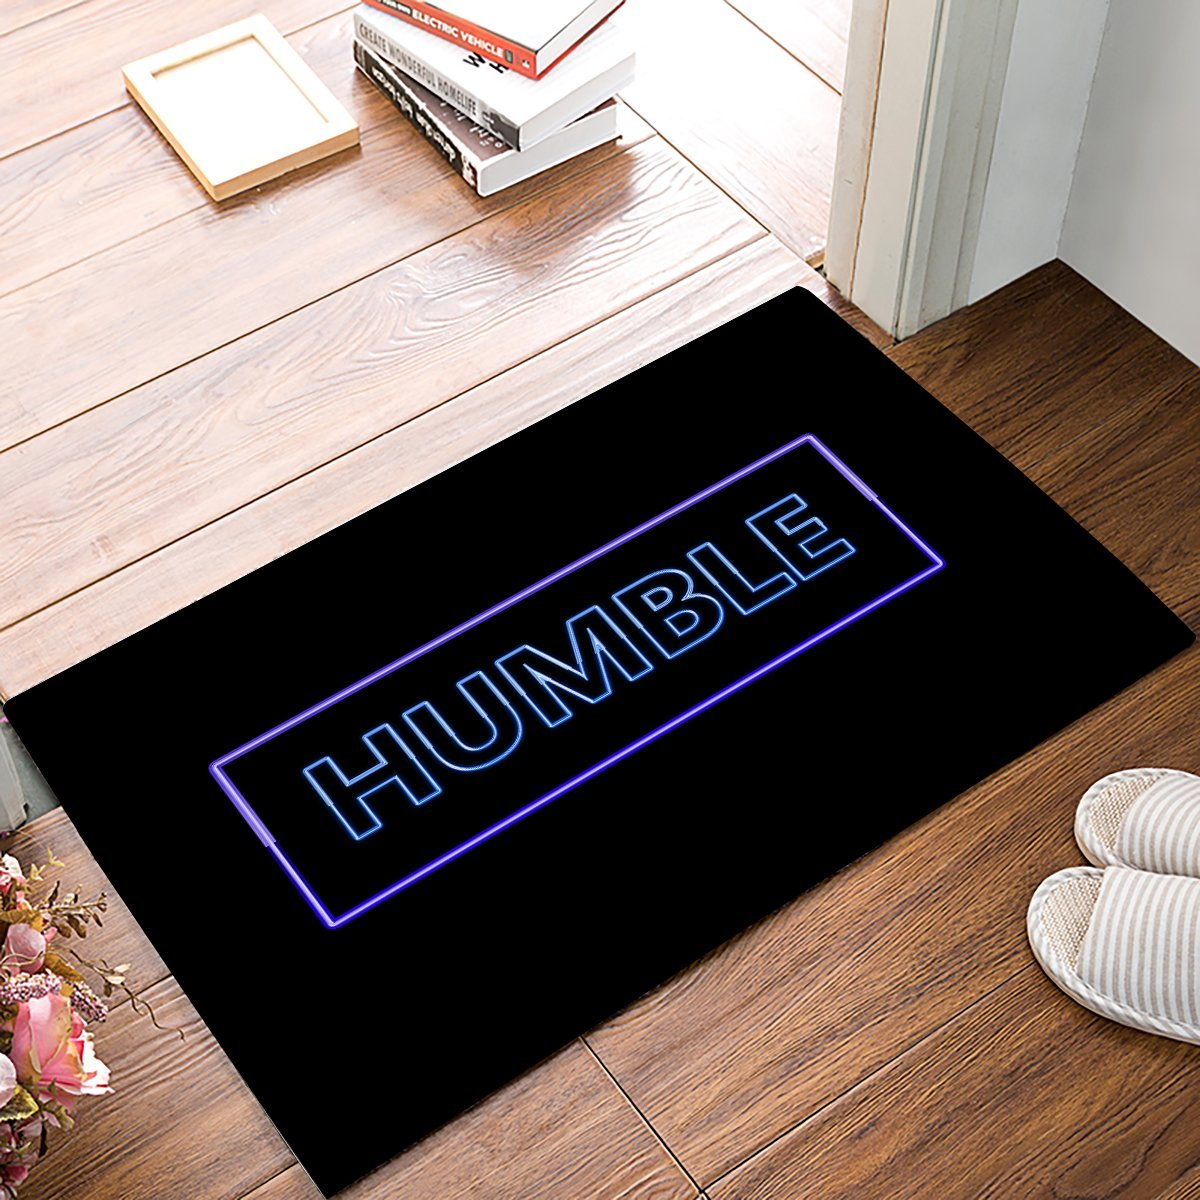 Humble - On Purple Neon Light Rectangle Background Door Mats Kitchen Floor Bath Entrance Rug Mat Absorbent Indoor Bathroom